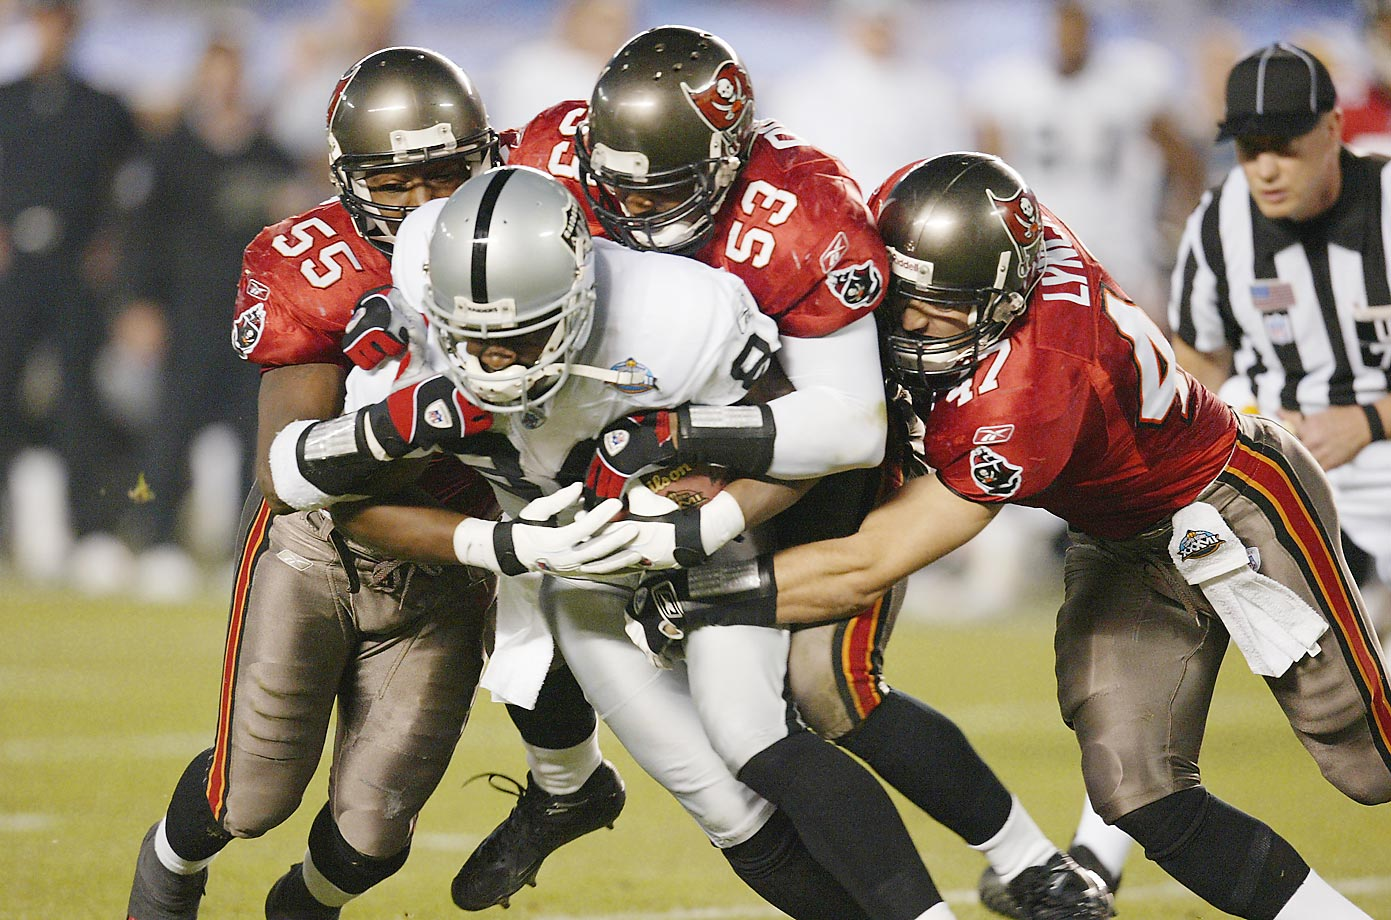 The Buccaneers sacked Rich Gannon five times and returned three of his record-setting five interceptions for touchdowns in the Gruden Bowl.